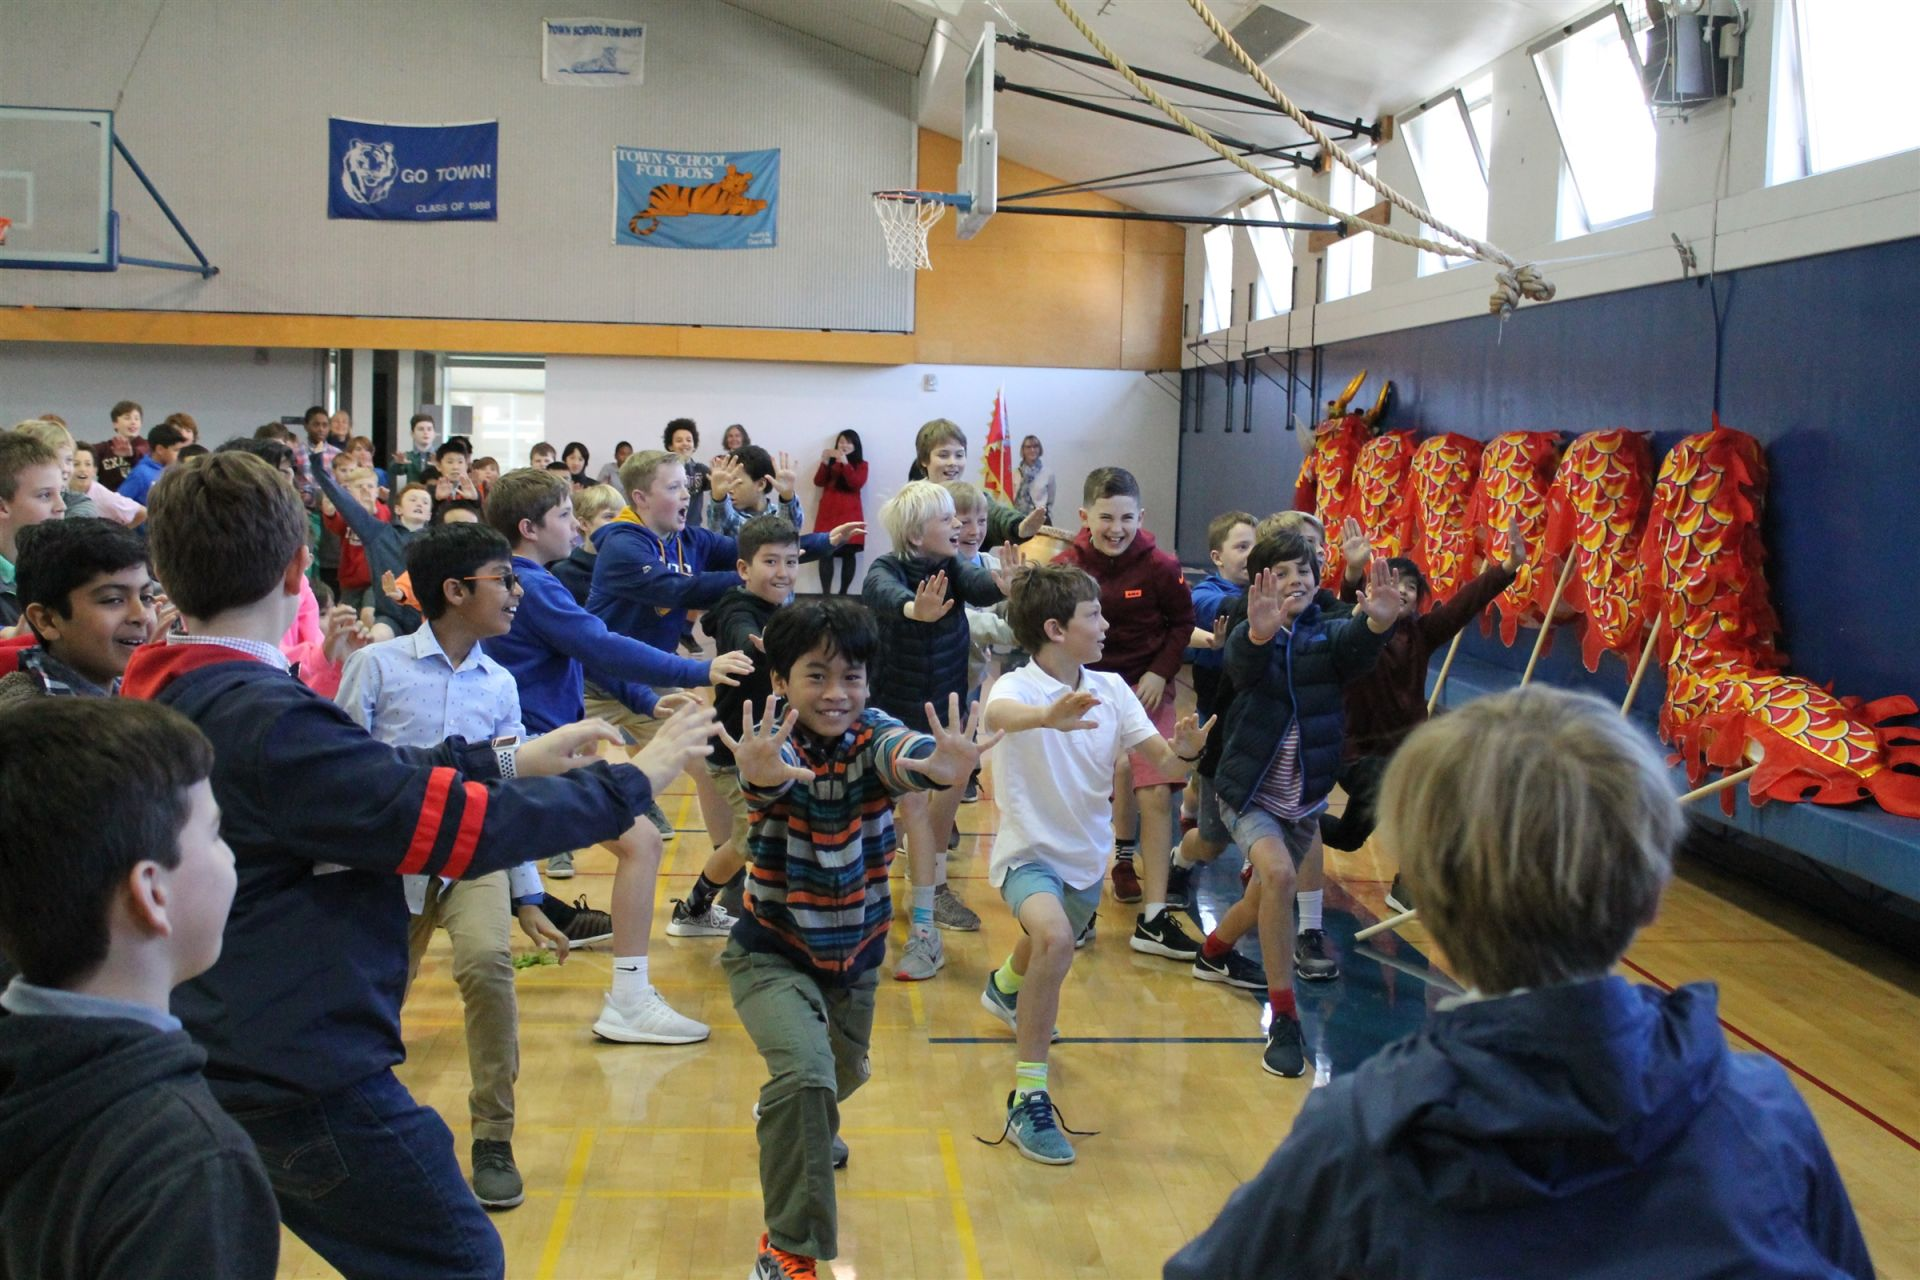 Students Learning from the Panda Kung Fu Center Visitors During the Lunar New Year Celebration